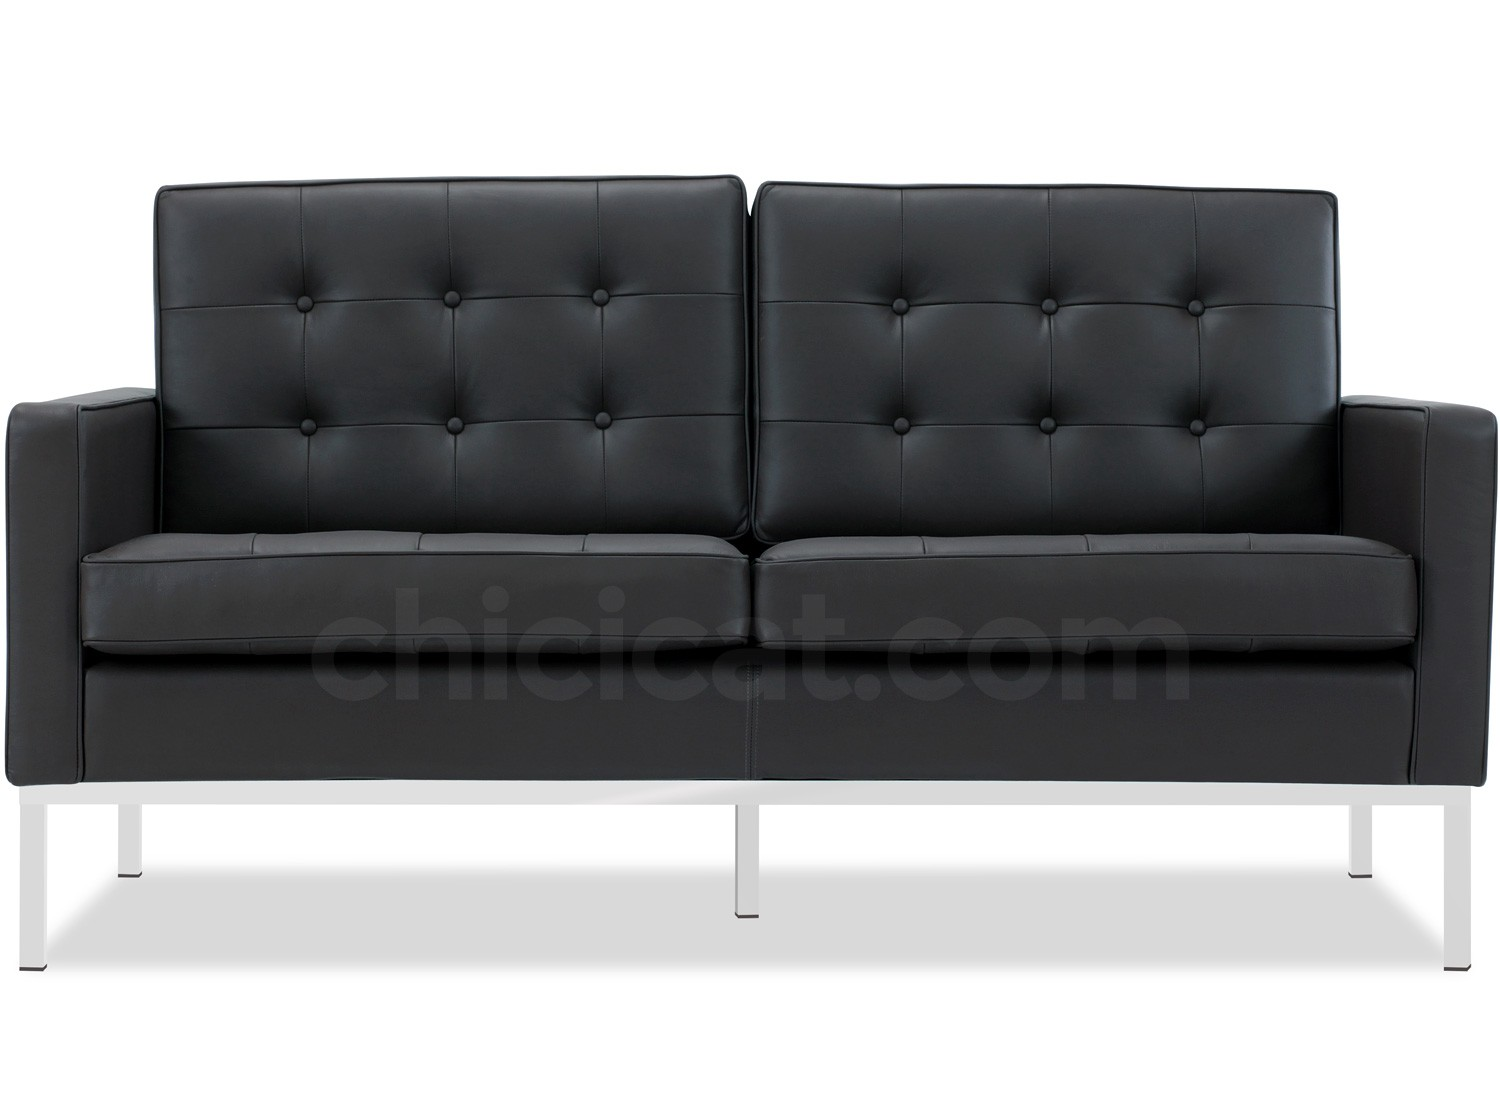 florence knoll sofa 2 seater leather platinum replica. Black Bedroom Furniture Sets. Home Design Ideas